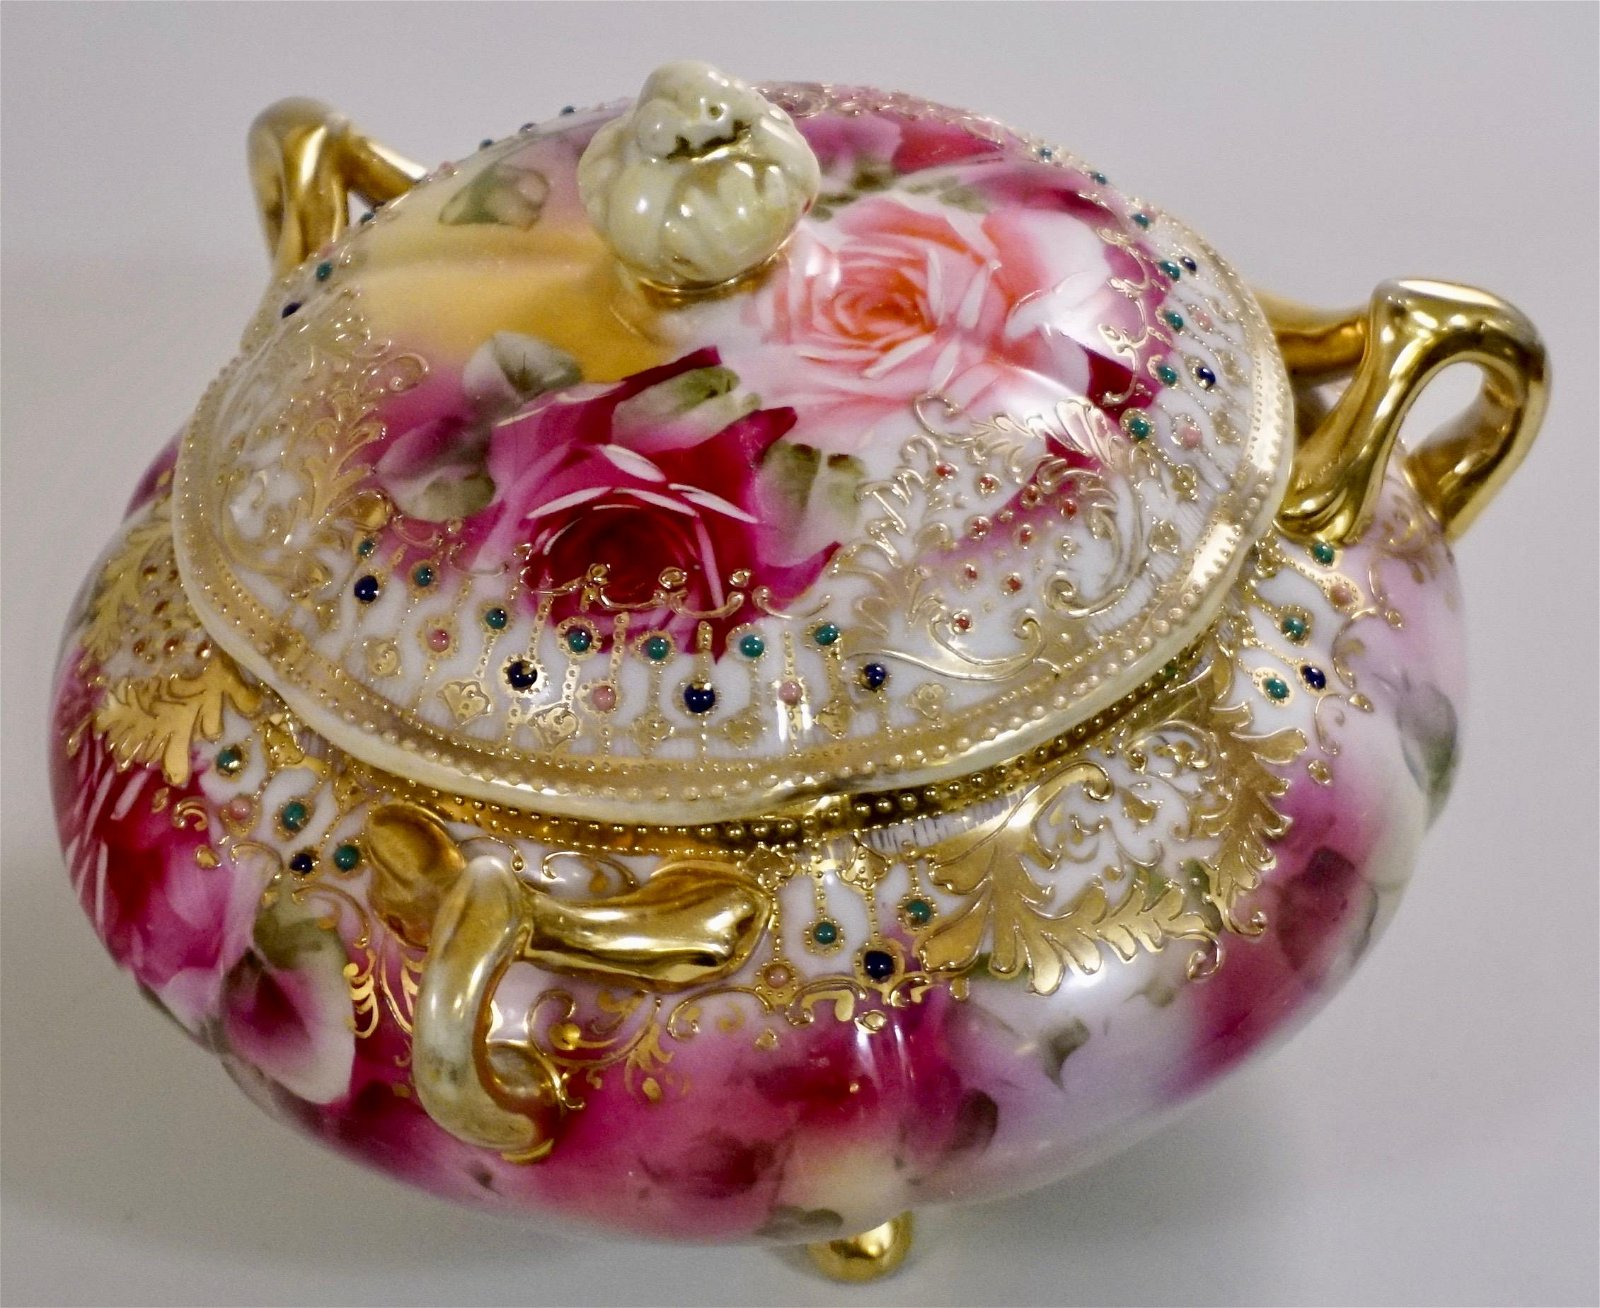 Nippon Porcelain Jeweled Gold Moriage Hand Painted Rose